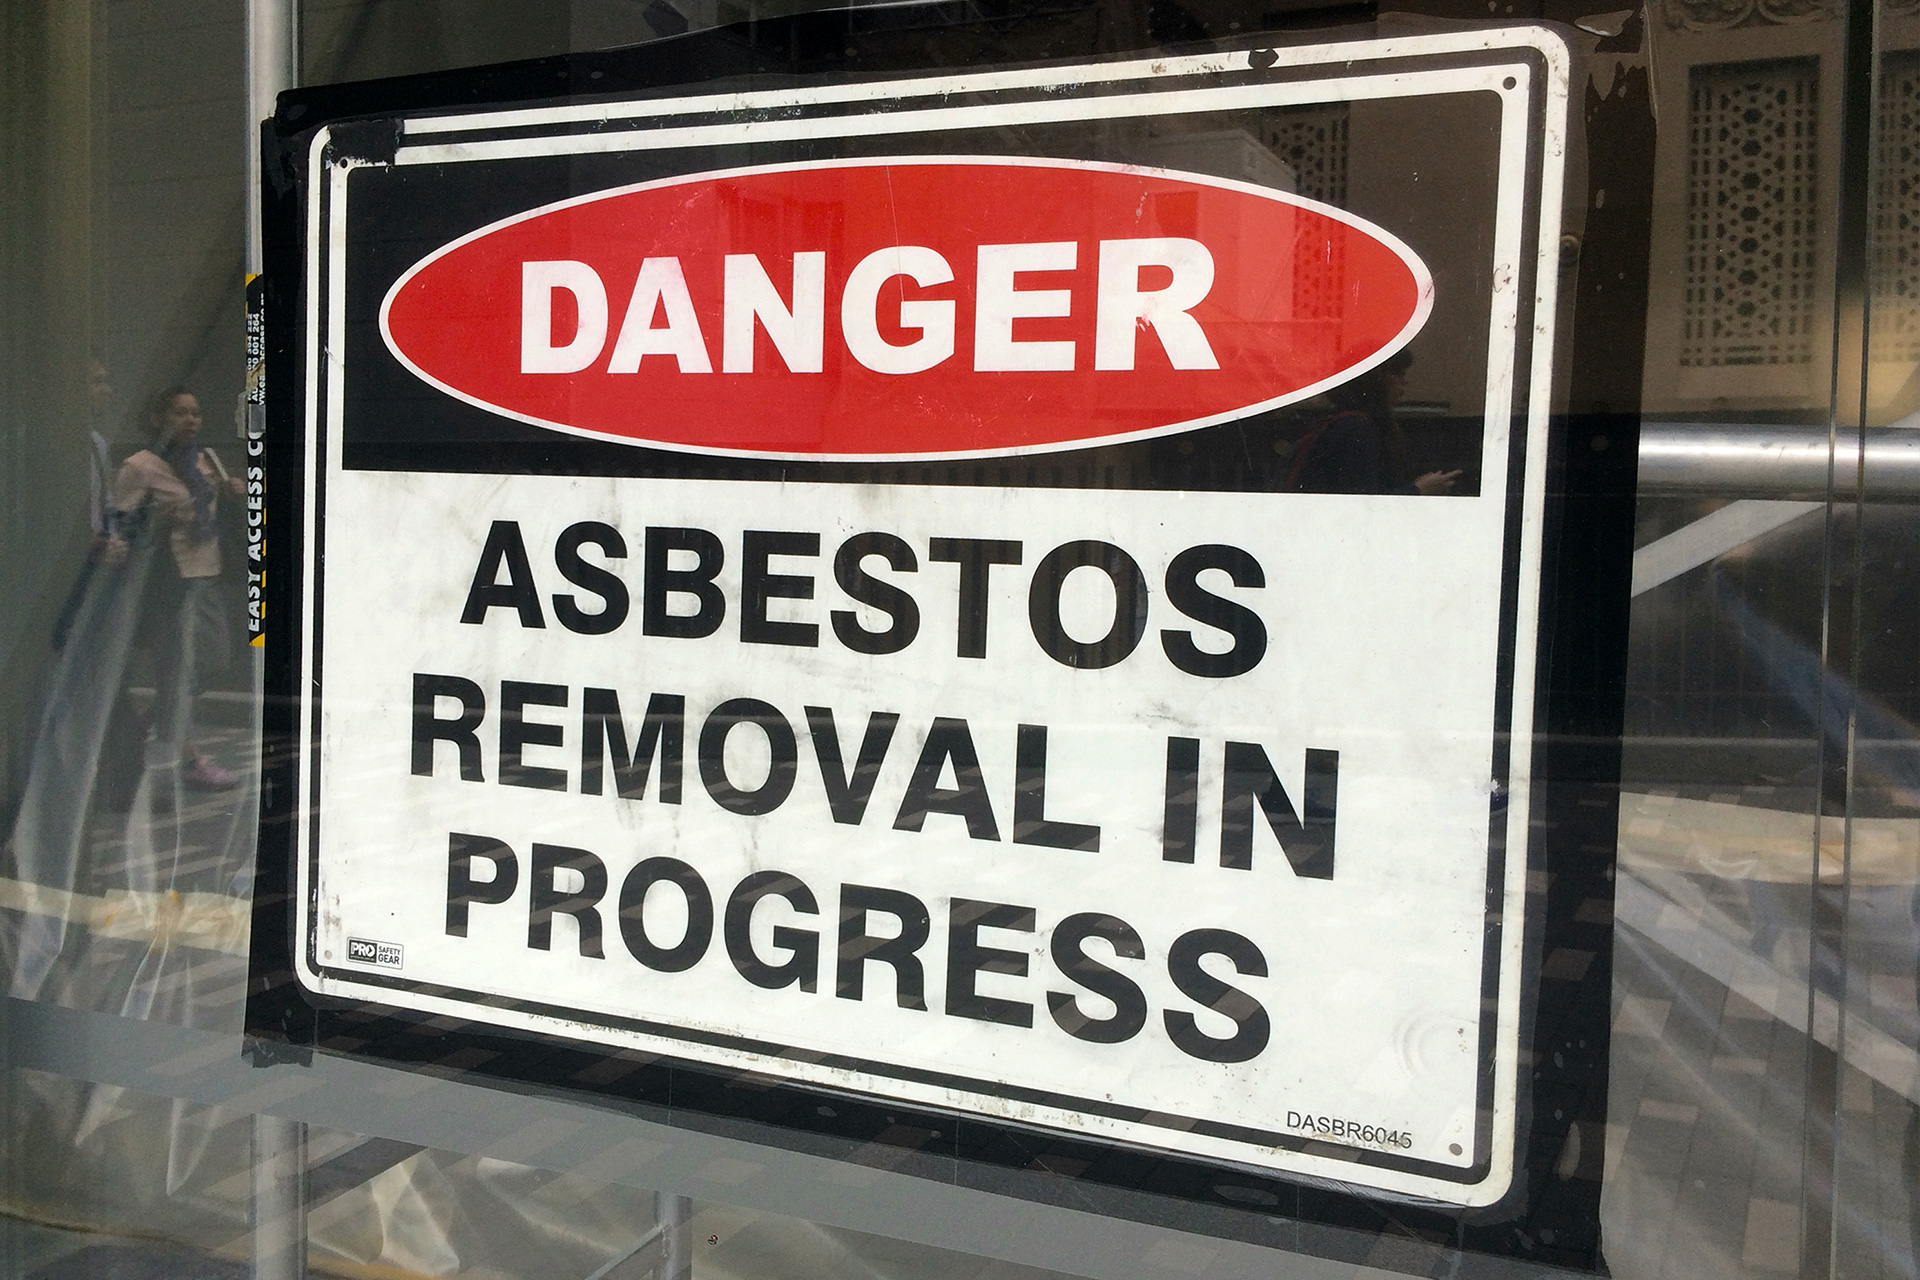 Asbestos Initial Training And Certification Classes In California